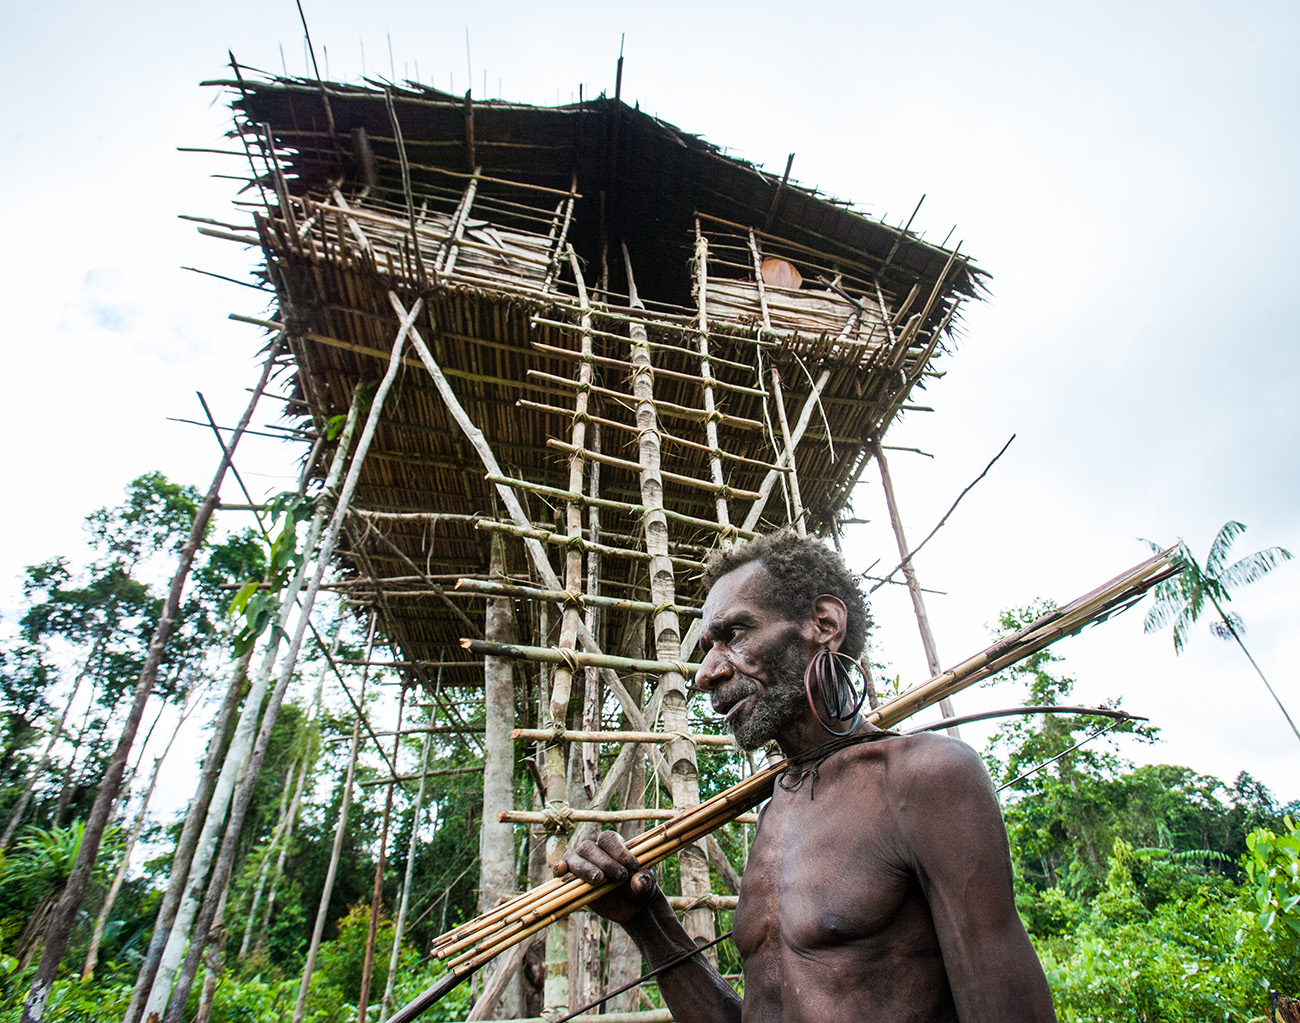 Korowai man, a traditional tree house